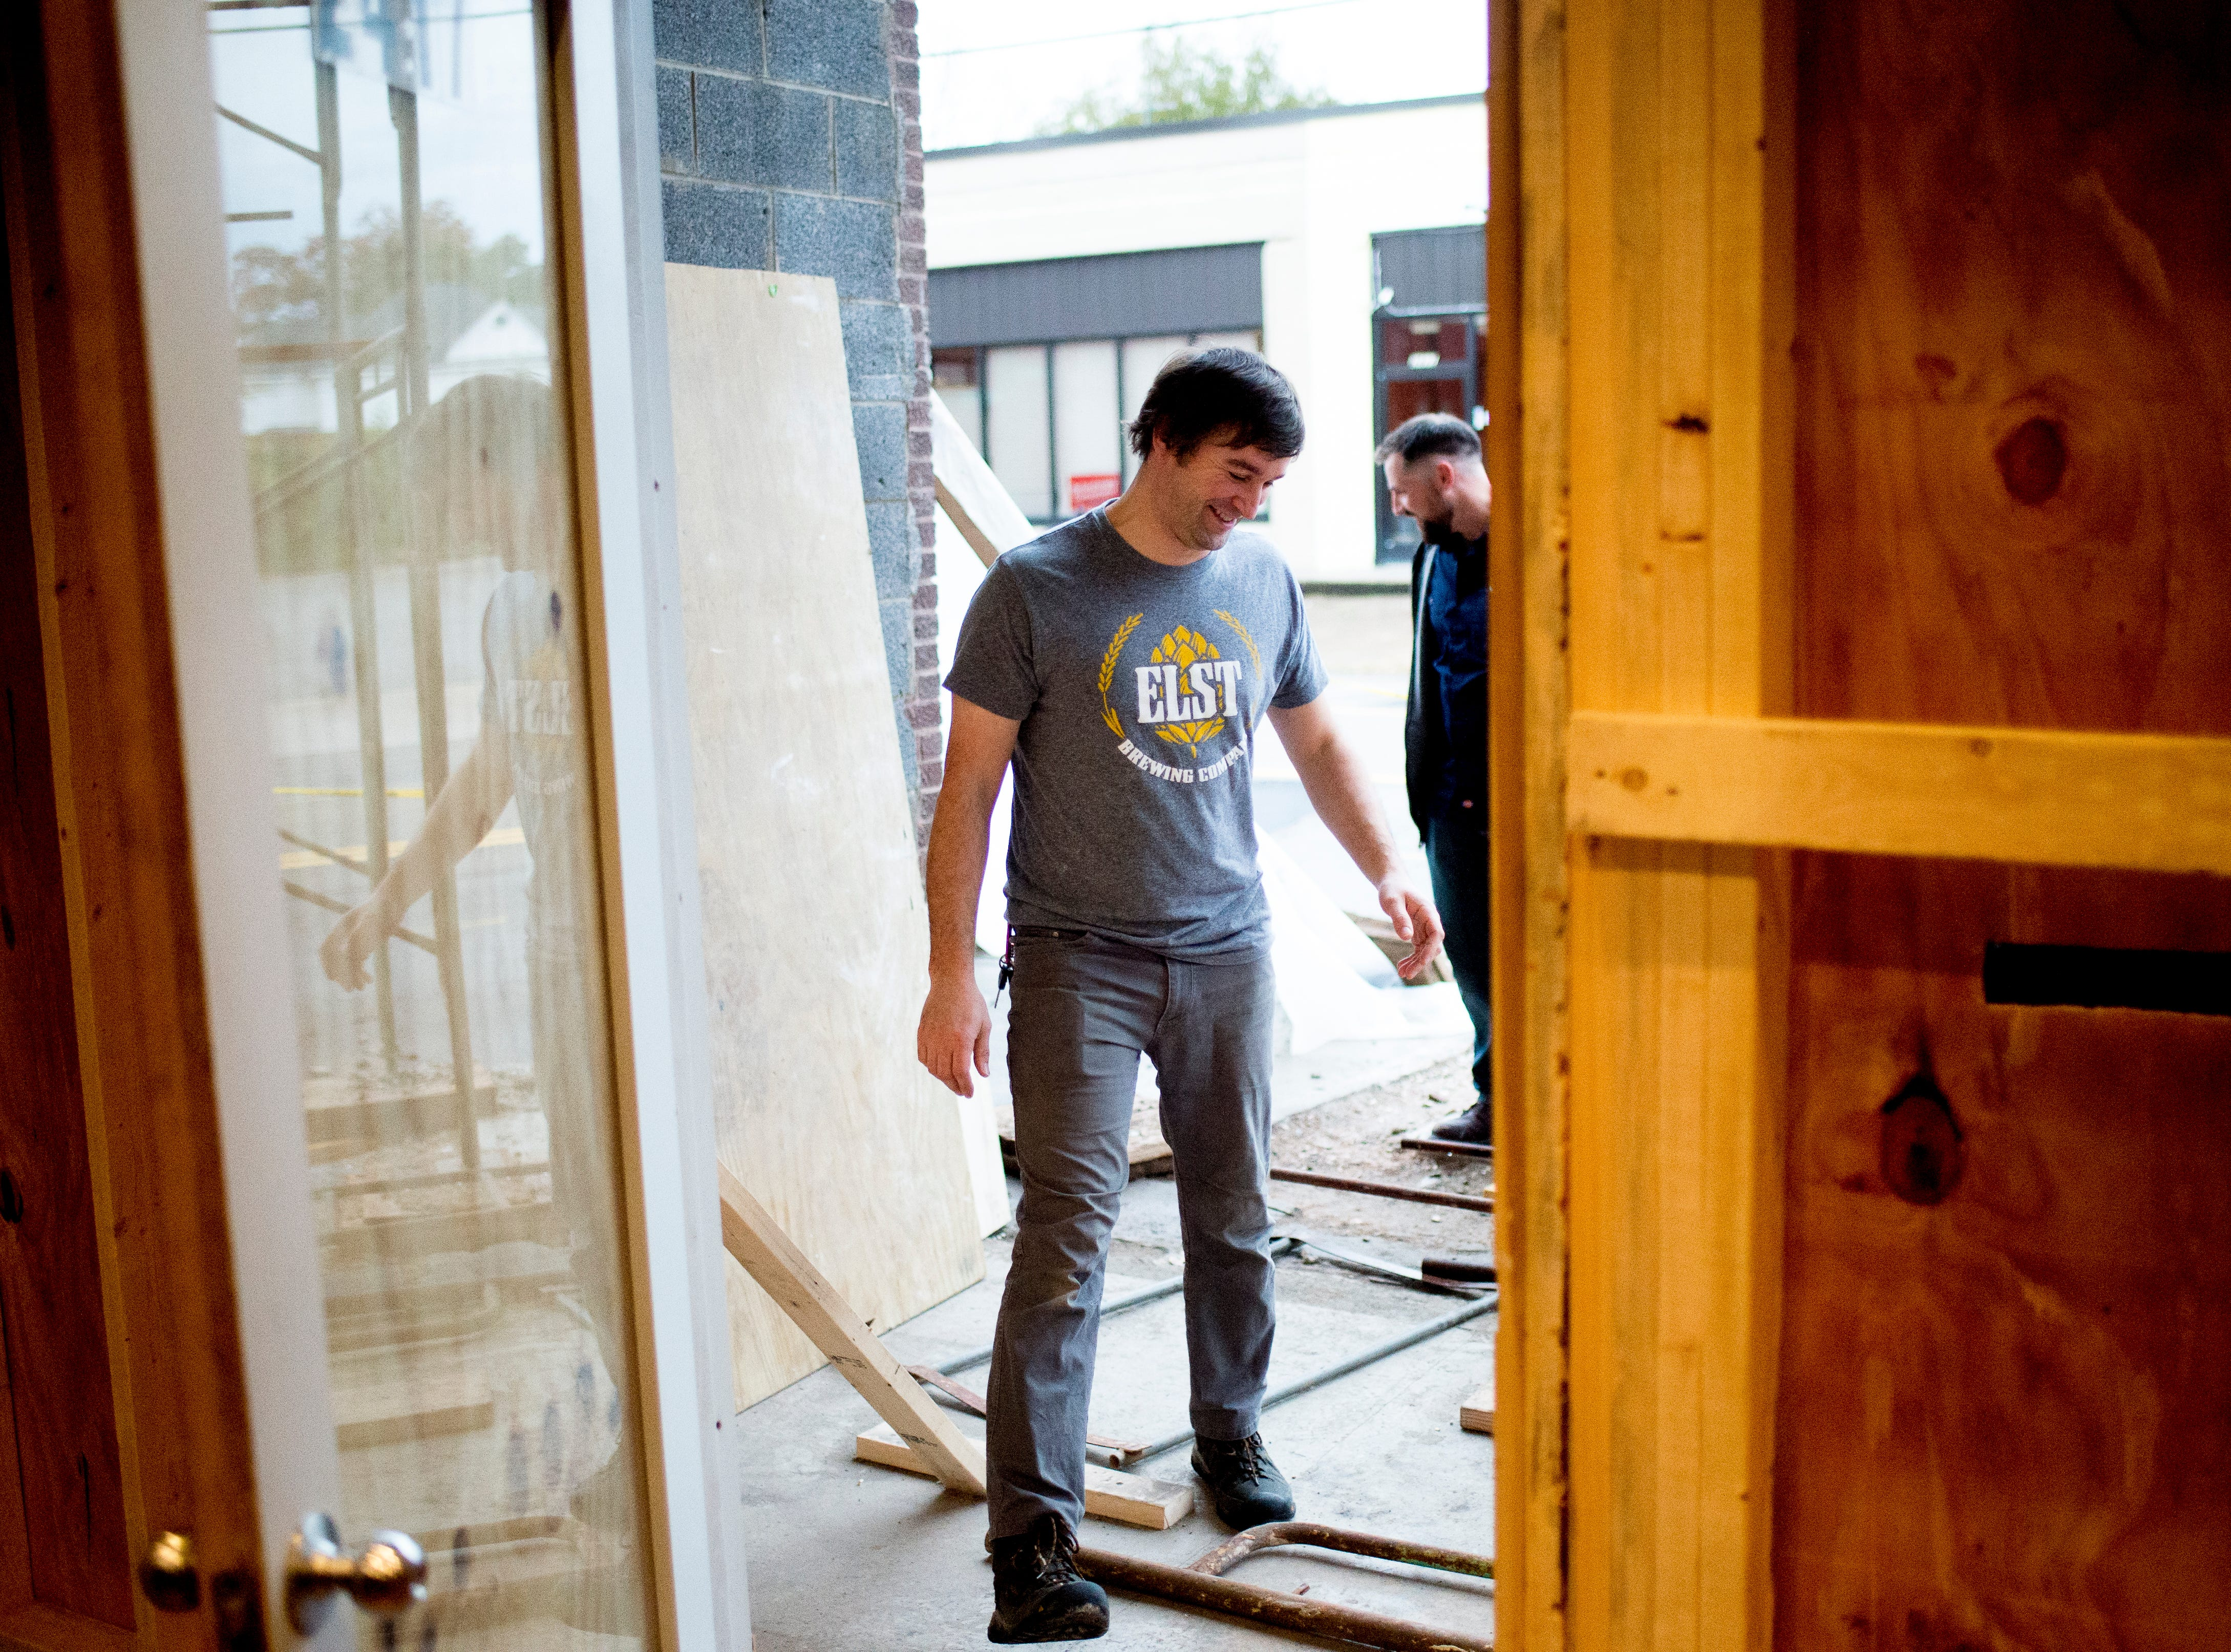 Chris Sexton walks through the entrance still undergoing construction at Elst Brewing Company on 2417 N Central St. in Knoxville, Tennessee on Thursday, November 1, 2018. Elst plans to open its door beginning next year.